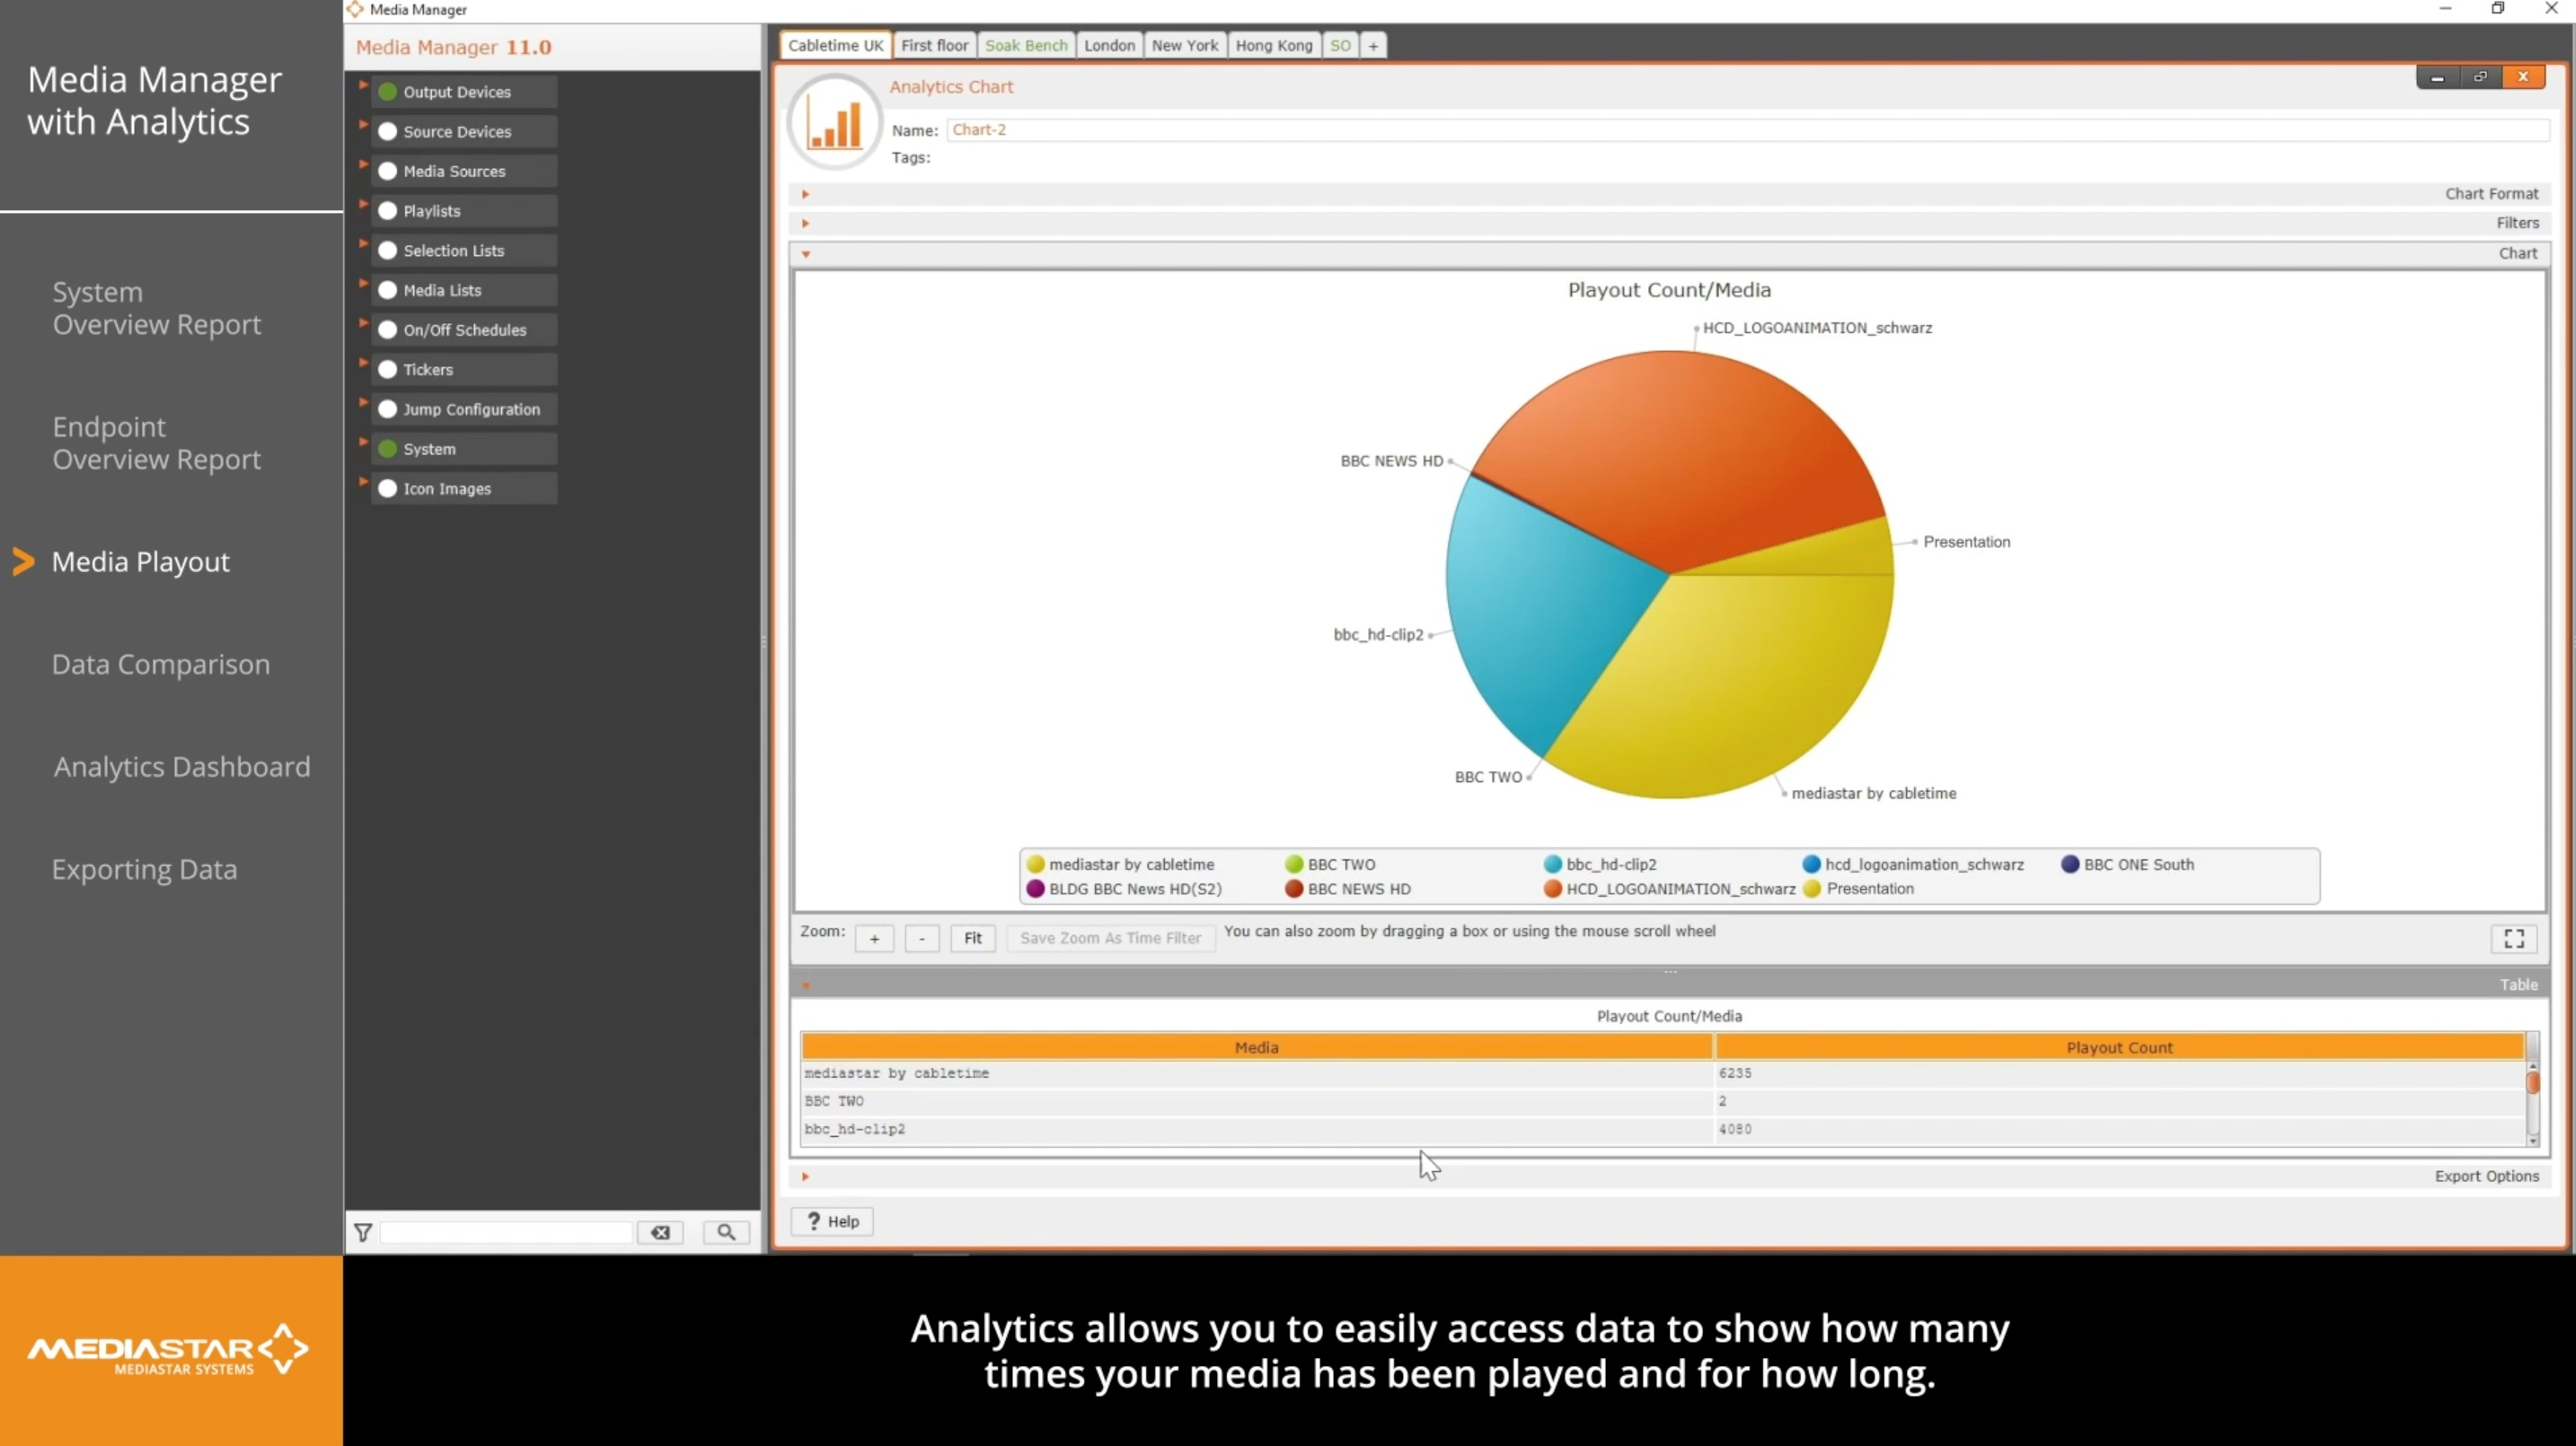 MediaStar Systems Boosts New Version of Media Manager with Analytics Module for Rapid Insight into Media Usage